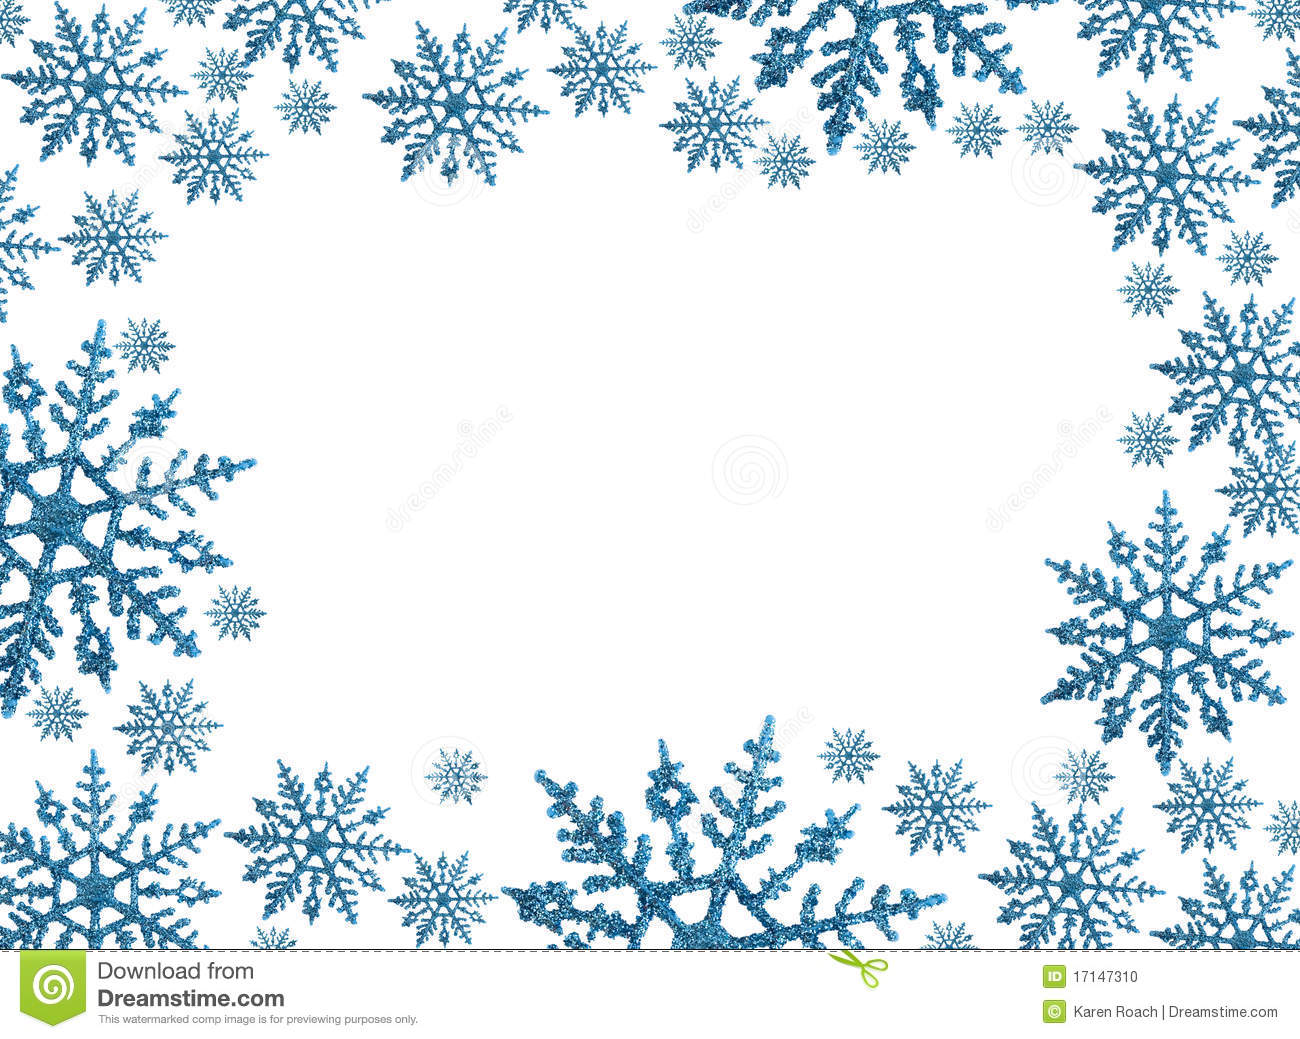 Winter clipart frame Cliparts Clipart Frame Snowflake Snowflake